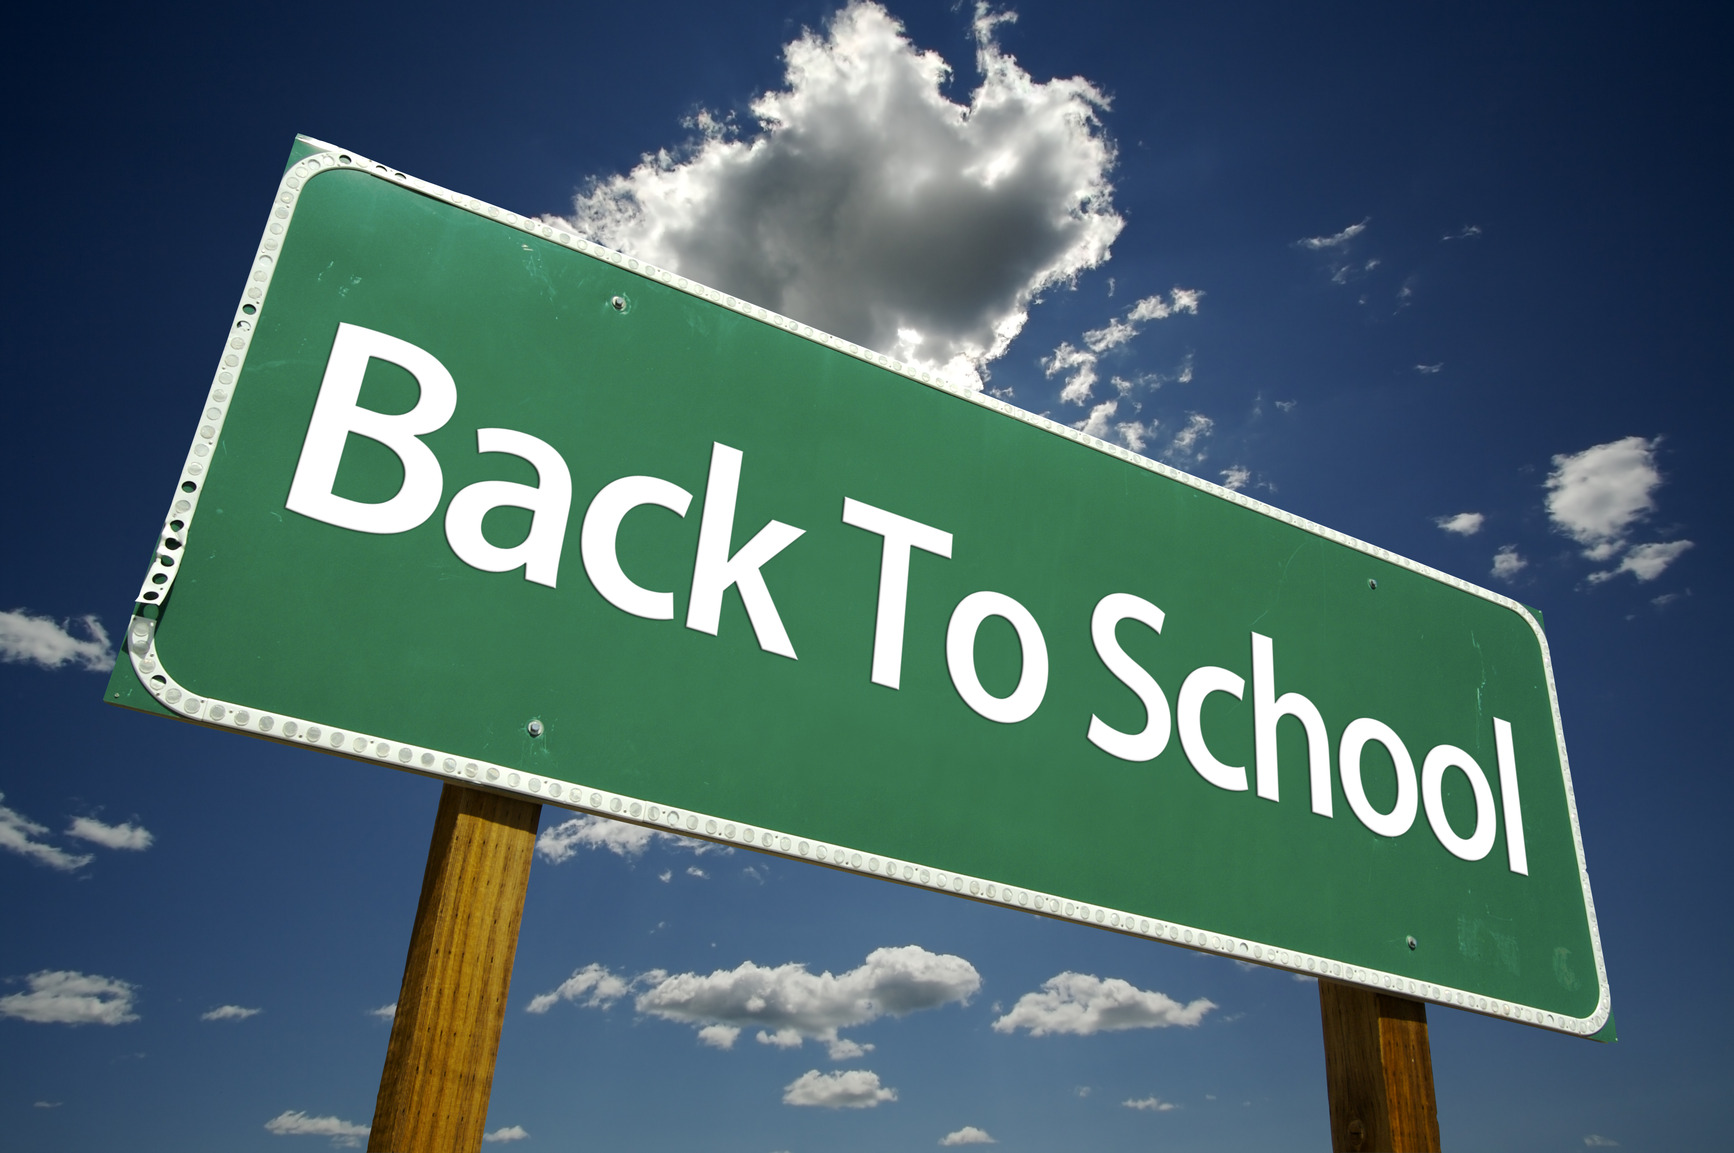 http://www.radair.com/wp-content/uploads/2013/08/back-to-school-road-sign.jpg